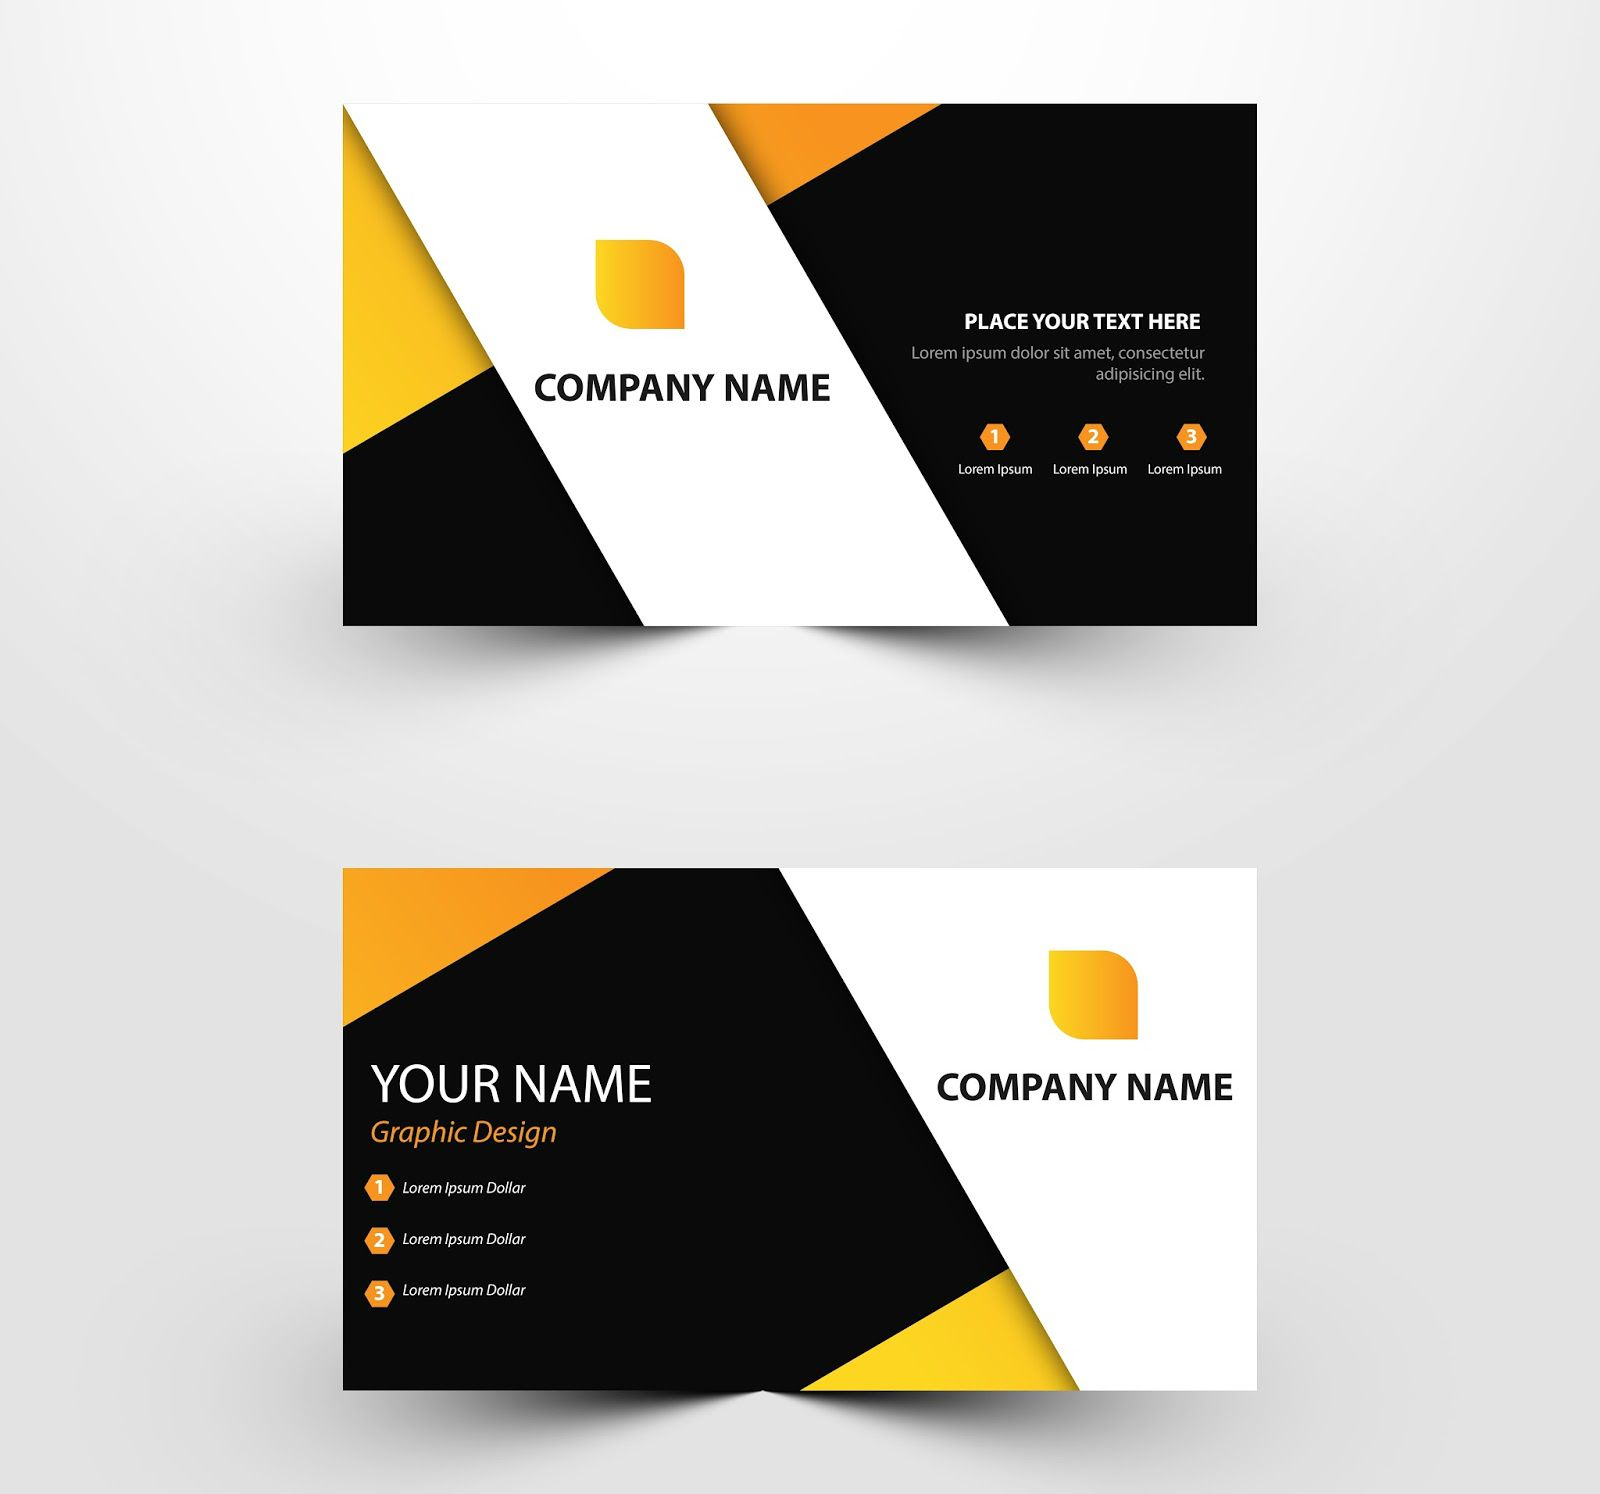 009 Fearsome Download Busines Card Template Concept  Free For Illustrator Visiting Layout Word 2010